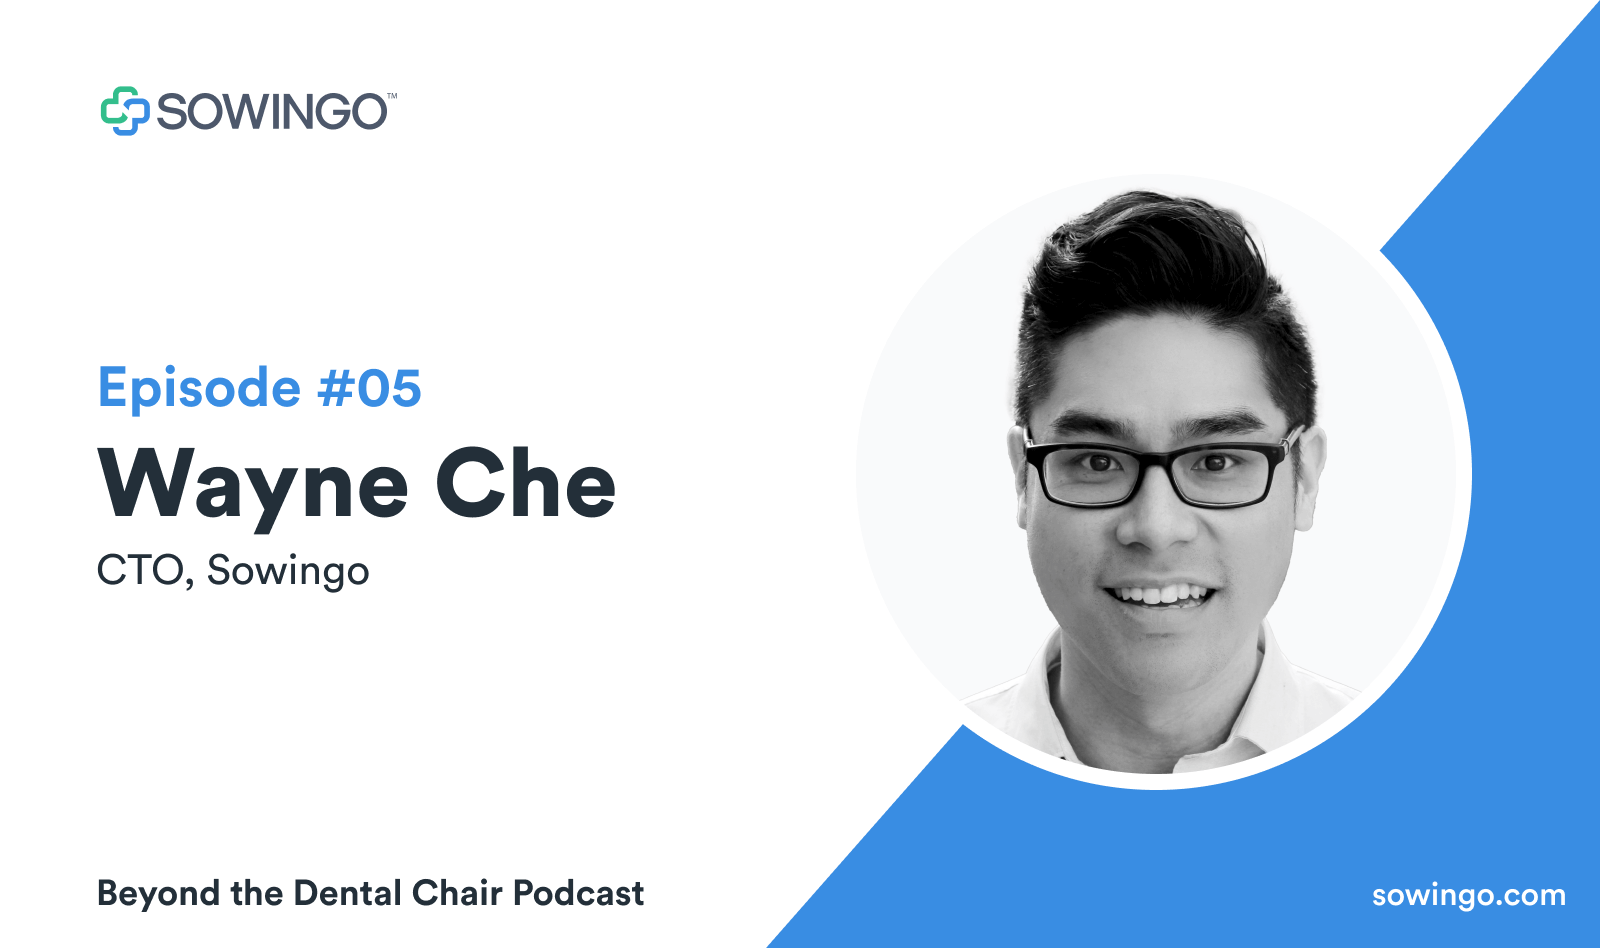 Beyond the dental podcast with Wayne Che